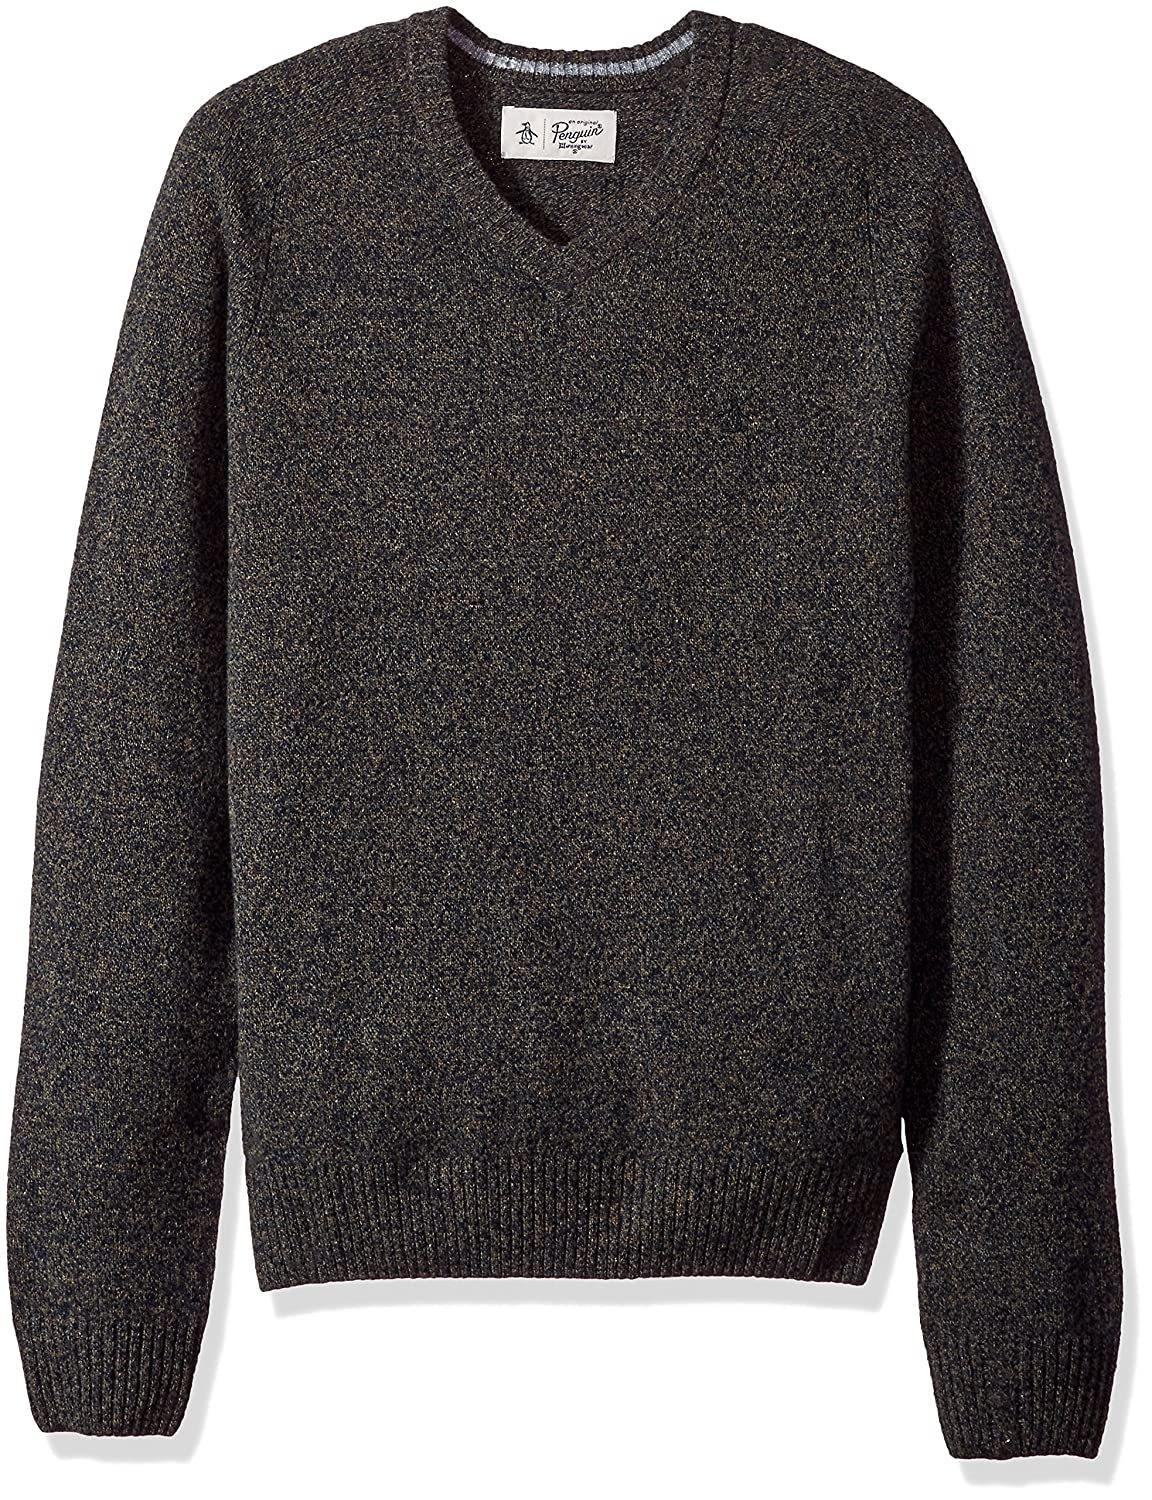 Original Penguin Men's P55 100% Lambswool V-Neck Sweater OPGF7098